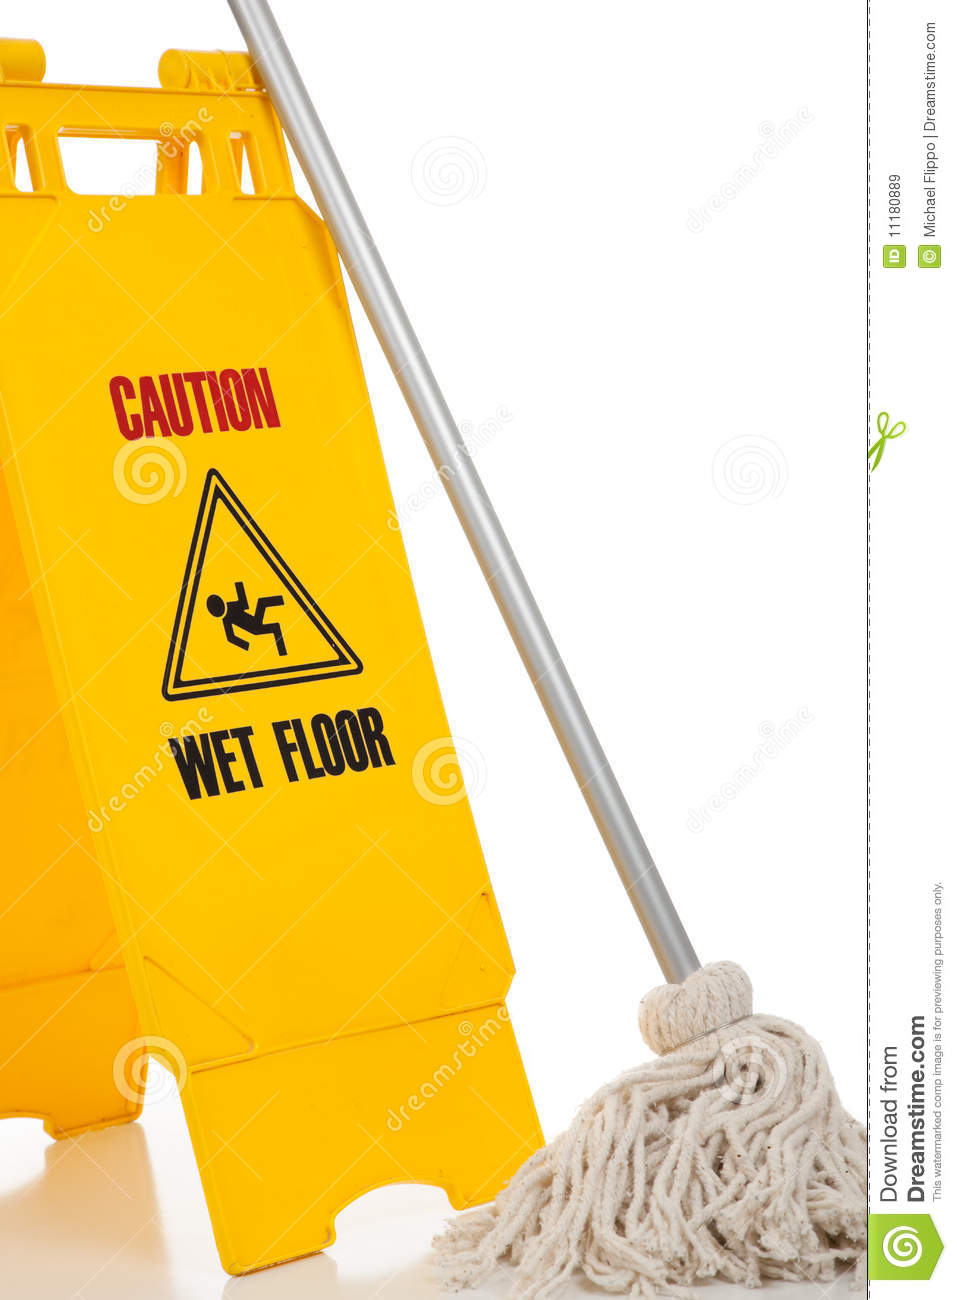 Wet floor sign and mop on white background stock image for Floor banner